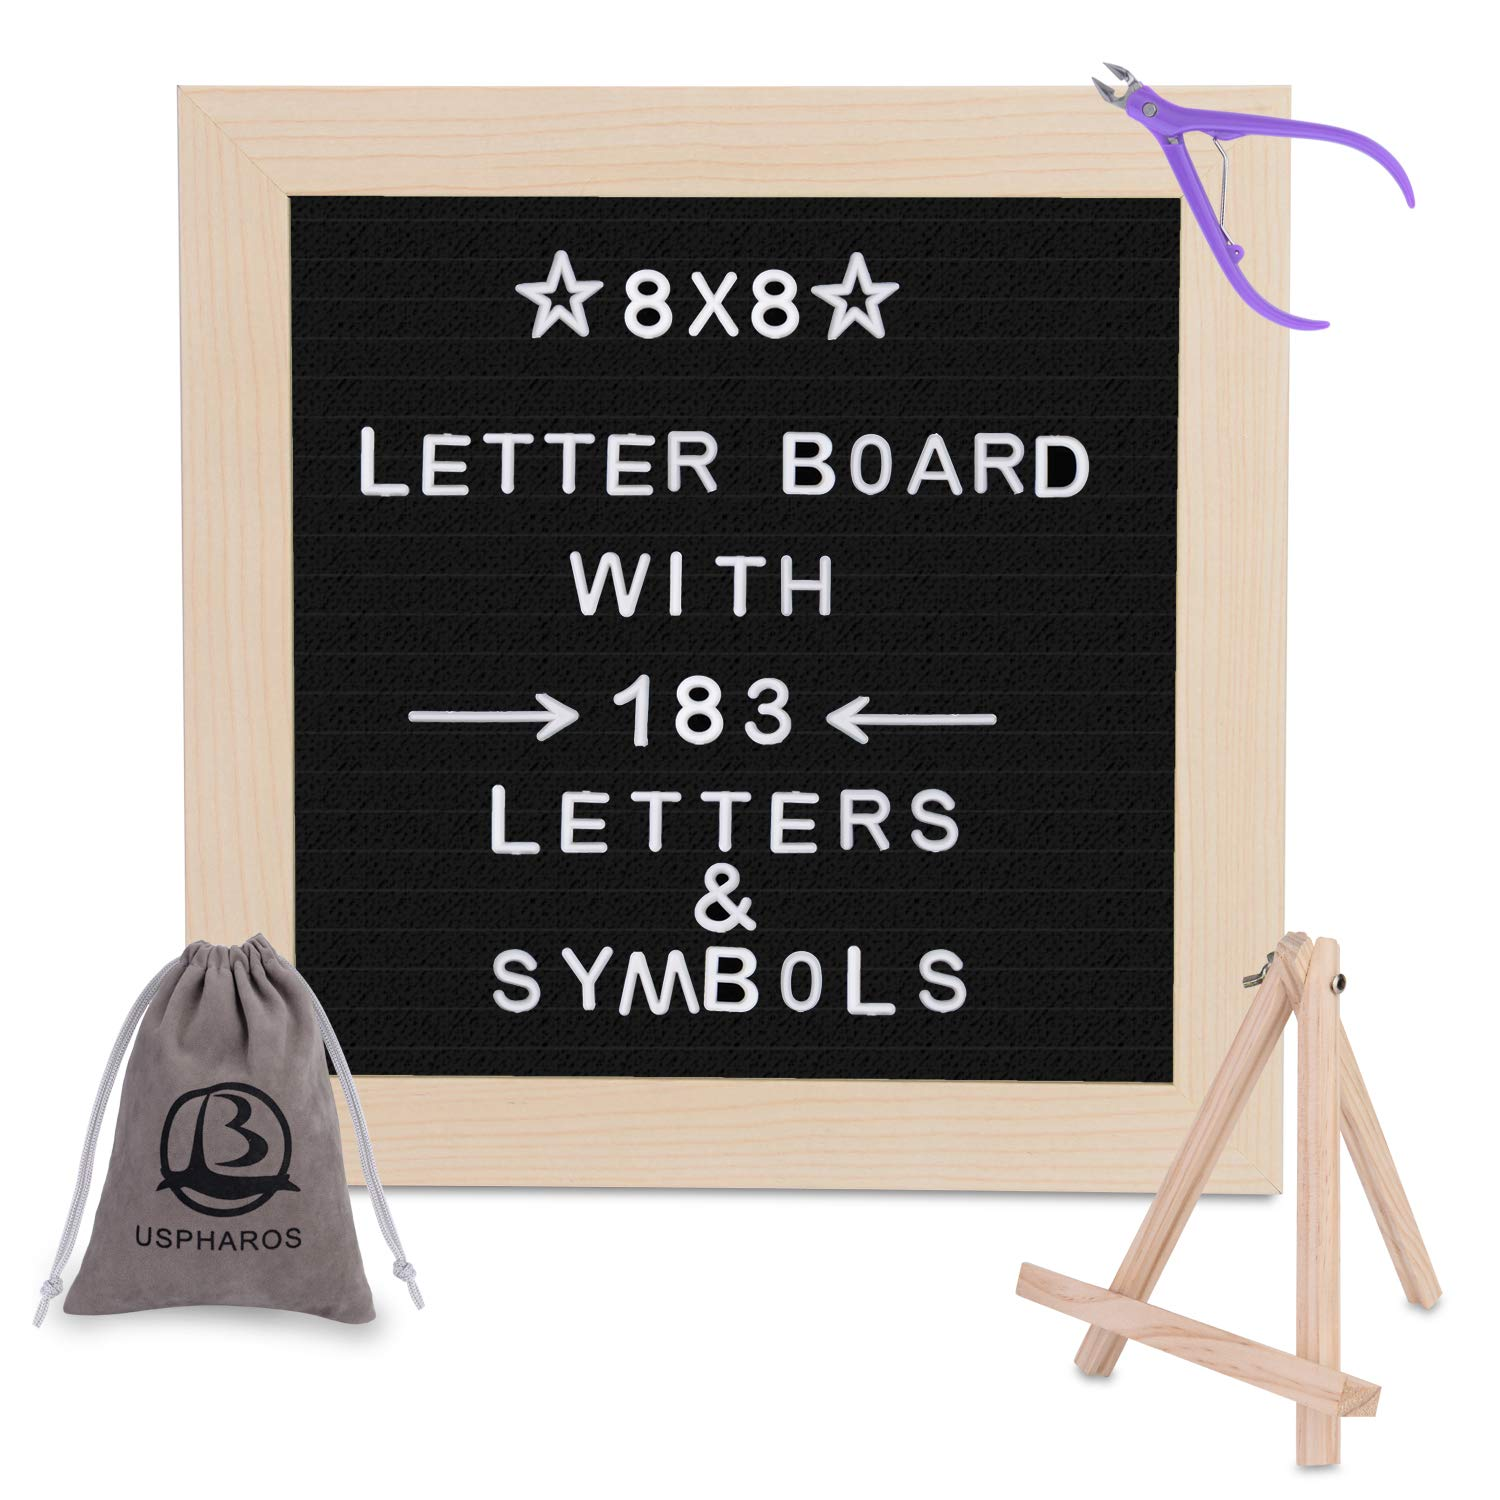 Letter Board 8x8 | +183 Letters ,Numbers,Symbols and Emojis +Sorting Tray | (Black) Felt Letter Board, Word Board, Message Board, Letter Sign Zhejiang Pharos Industrial and Trading Co.Ltd